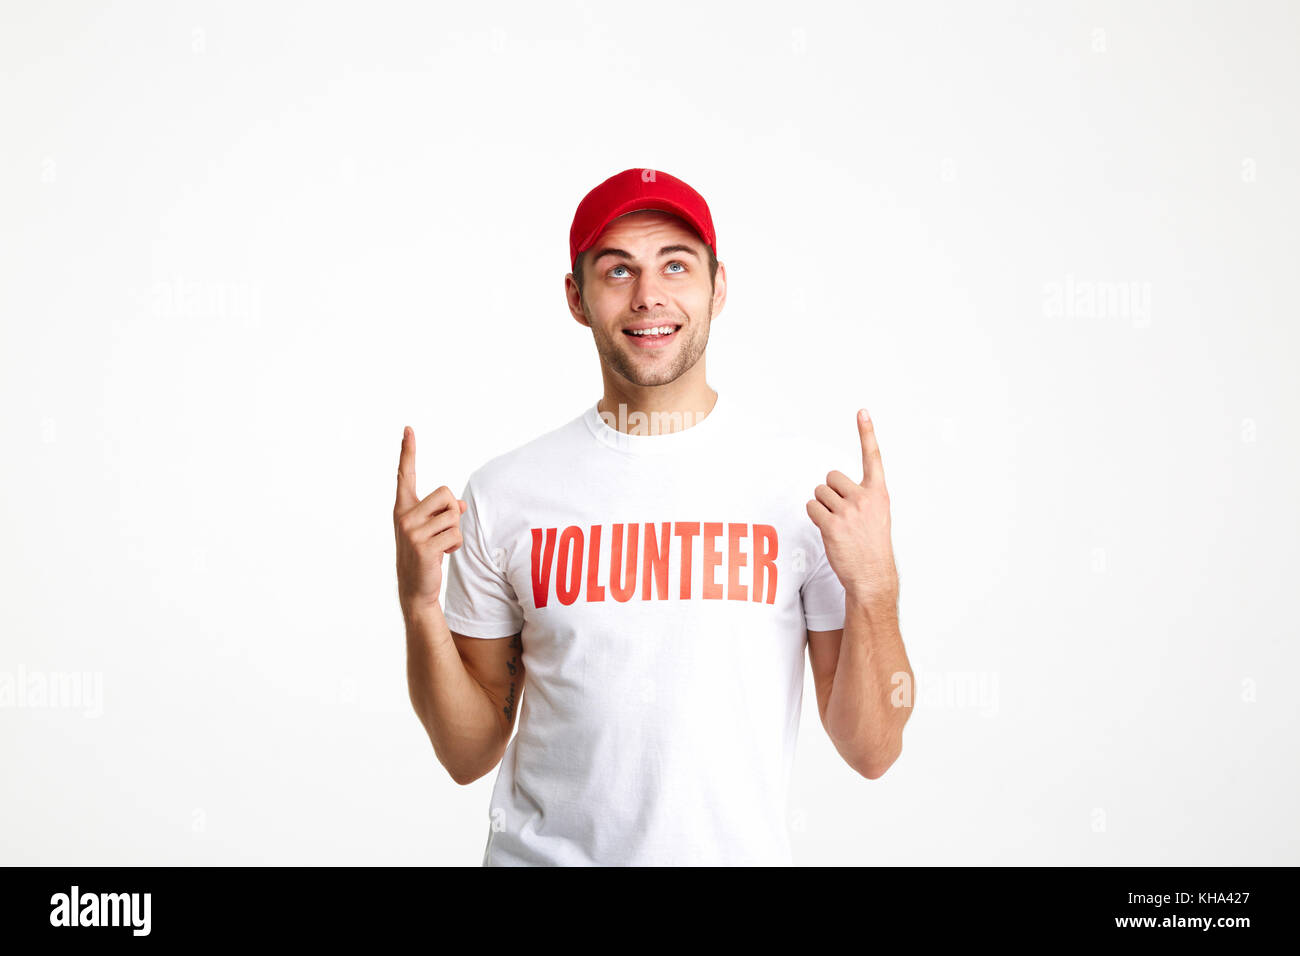 Portrait of a young man wearing volunteer t-shirt pointing two fingers up at copy space isolated over white background - Stock Image